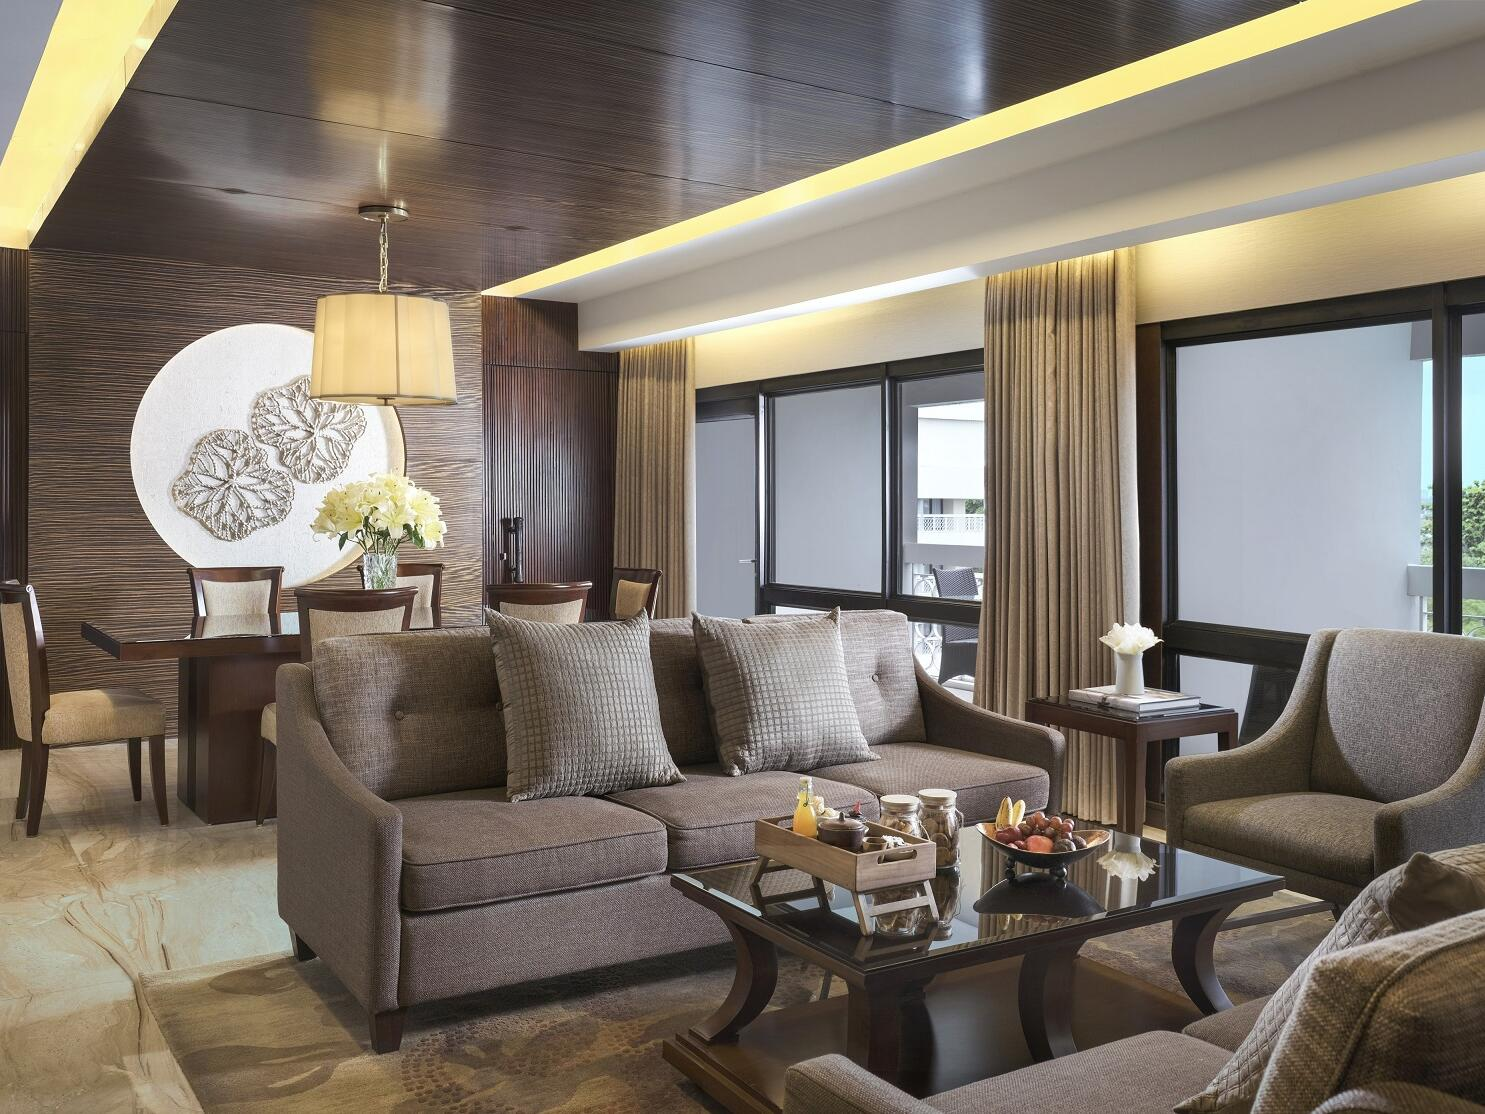 The living area in the Ambarrukmo Suite with a couch and a coffee table in Royal Ambarrukmo Yogyyakarta